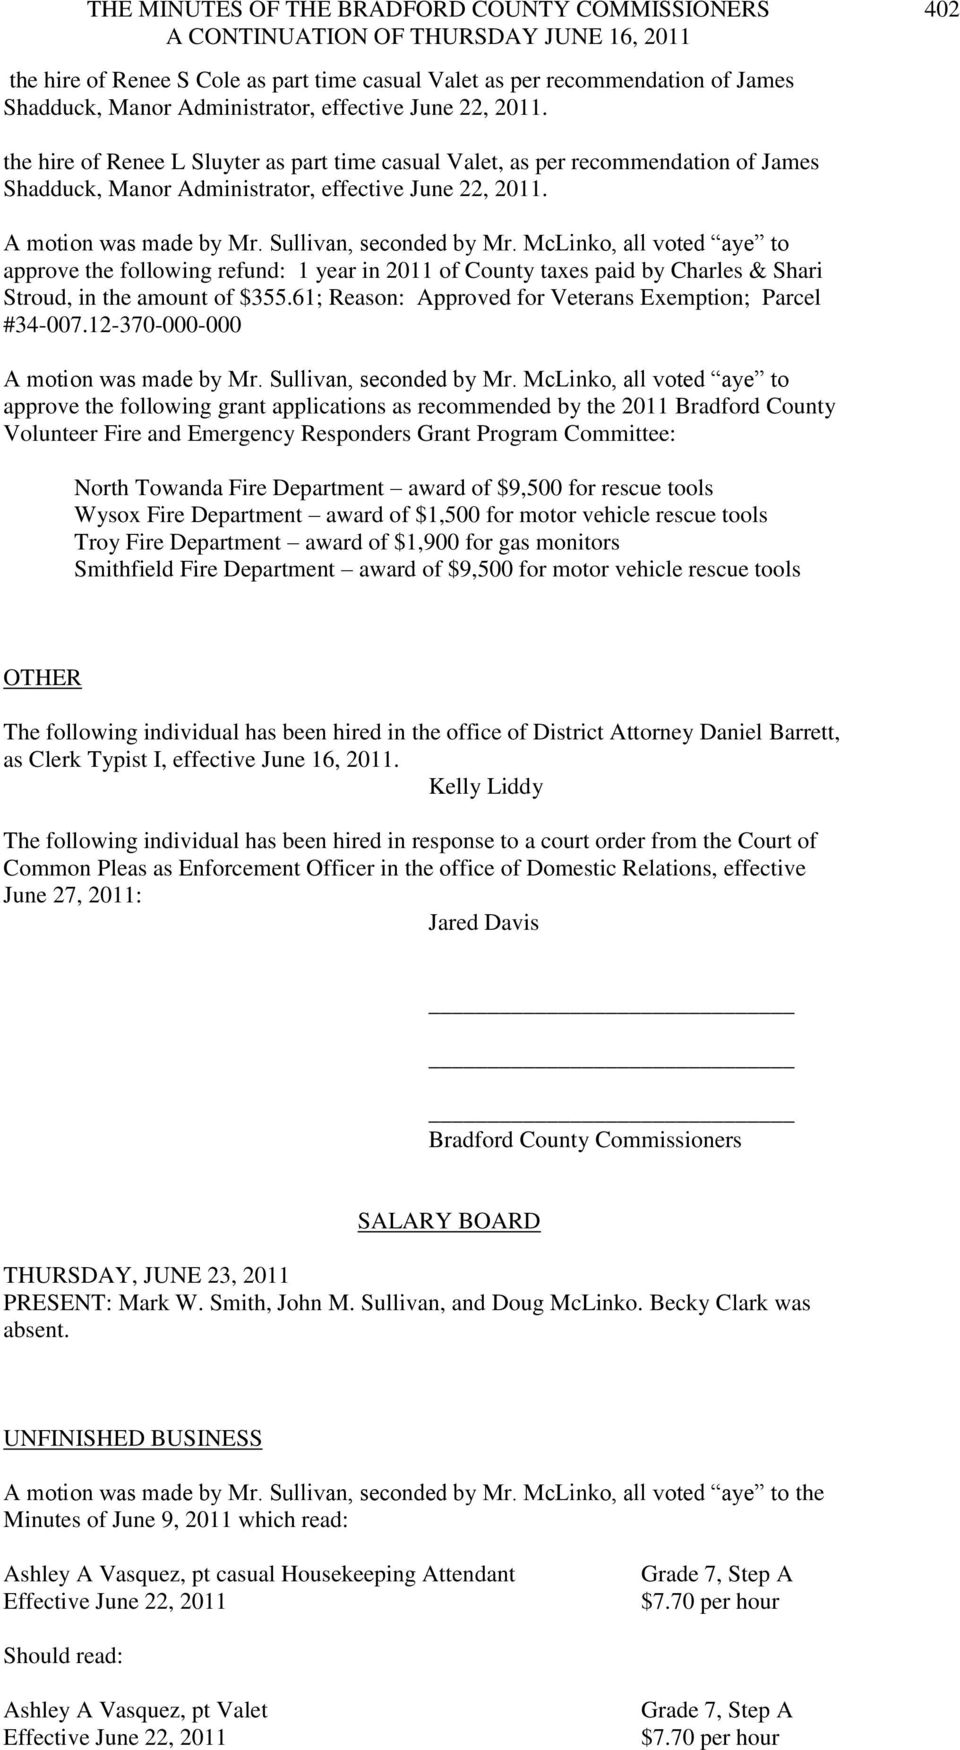 12-370-000-000 approve the following grant applications as recommended by the 2011 Bradford County Volunteer Fire and Emergency Responders Grant Program Committee: North Towanda Fire Department award